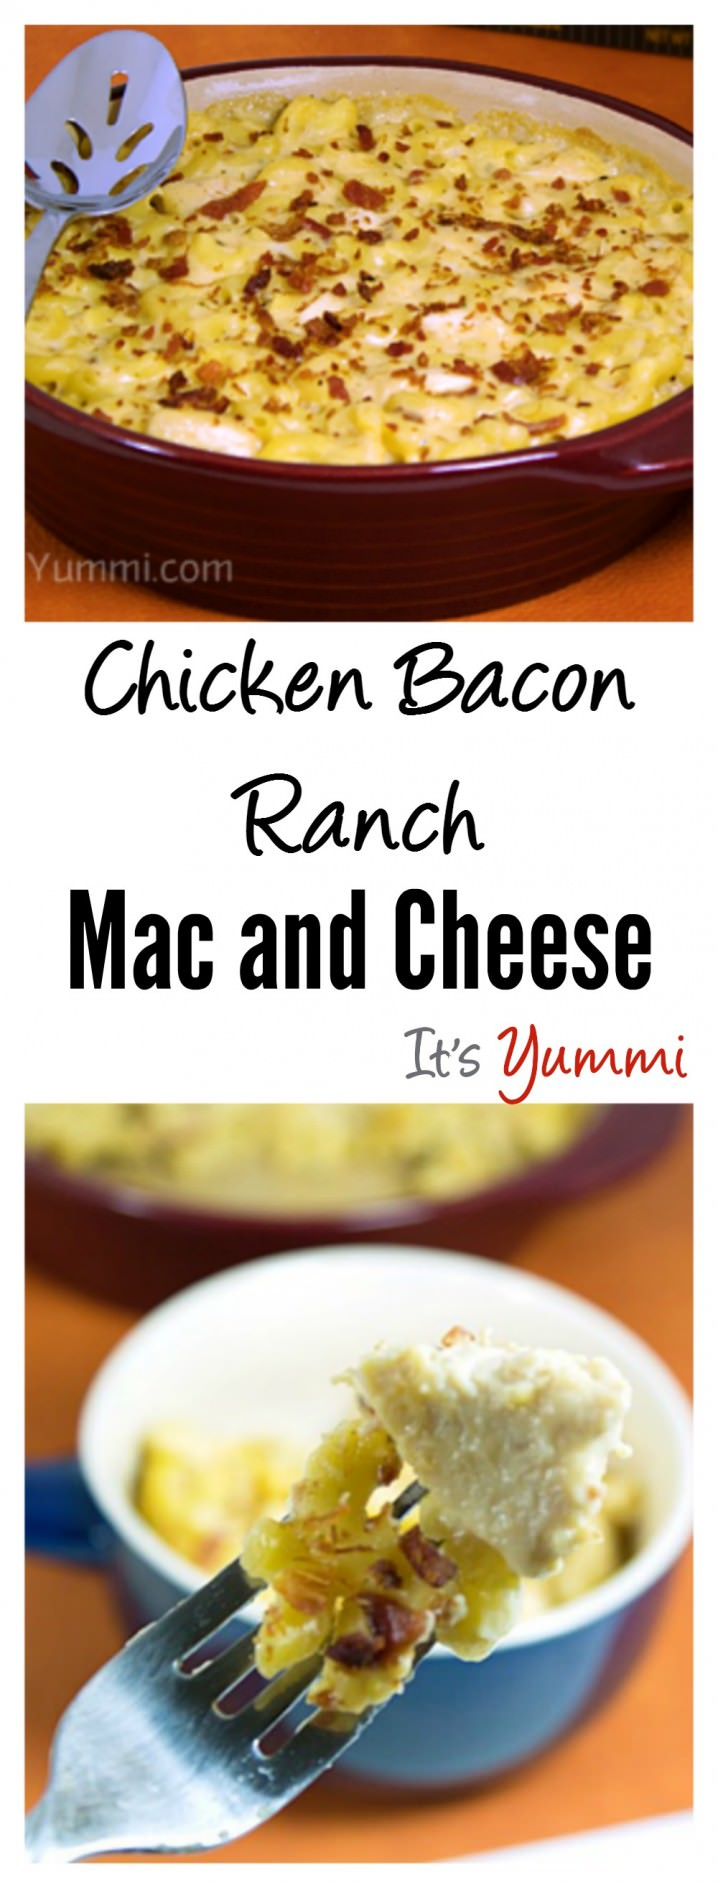 Chicken Bacon Ranch Mac and Cheese Recipe from ItsYummi.com is lightened up version of traditional macaroni and cheese. Comfort food with less guilt!